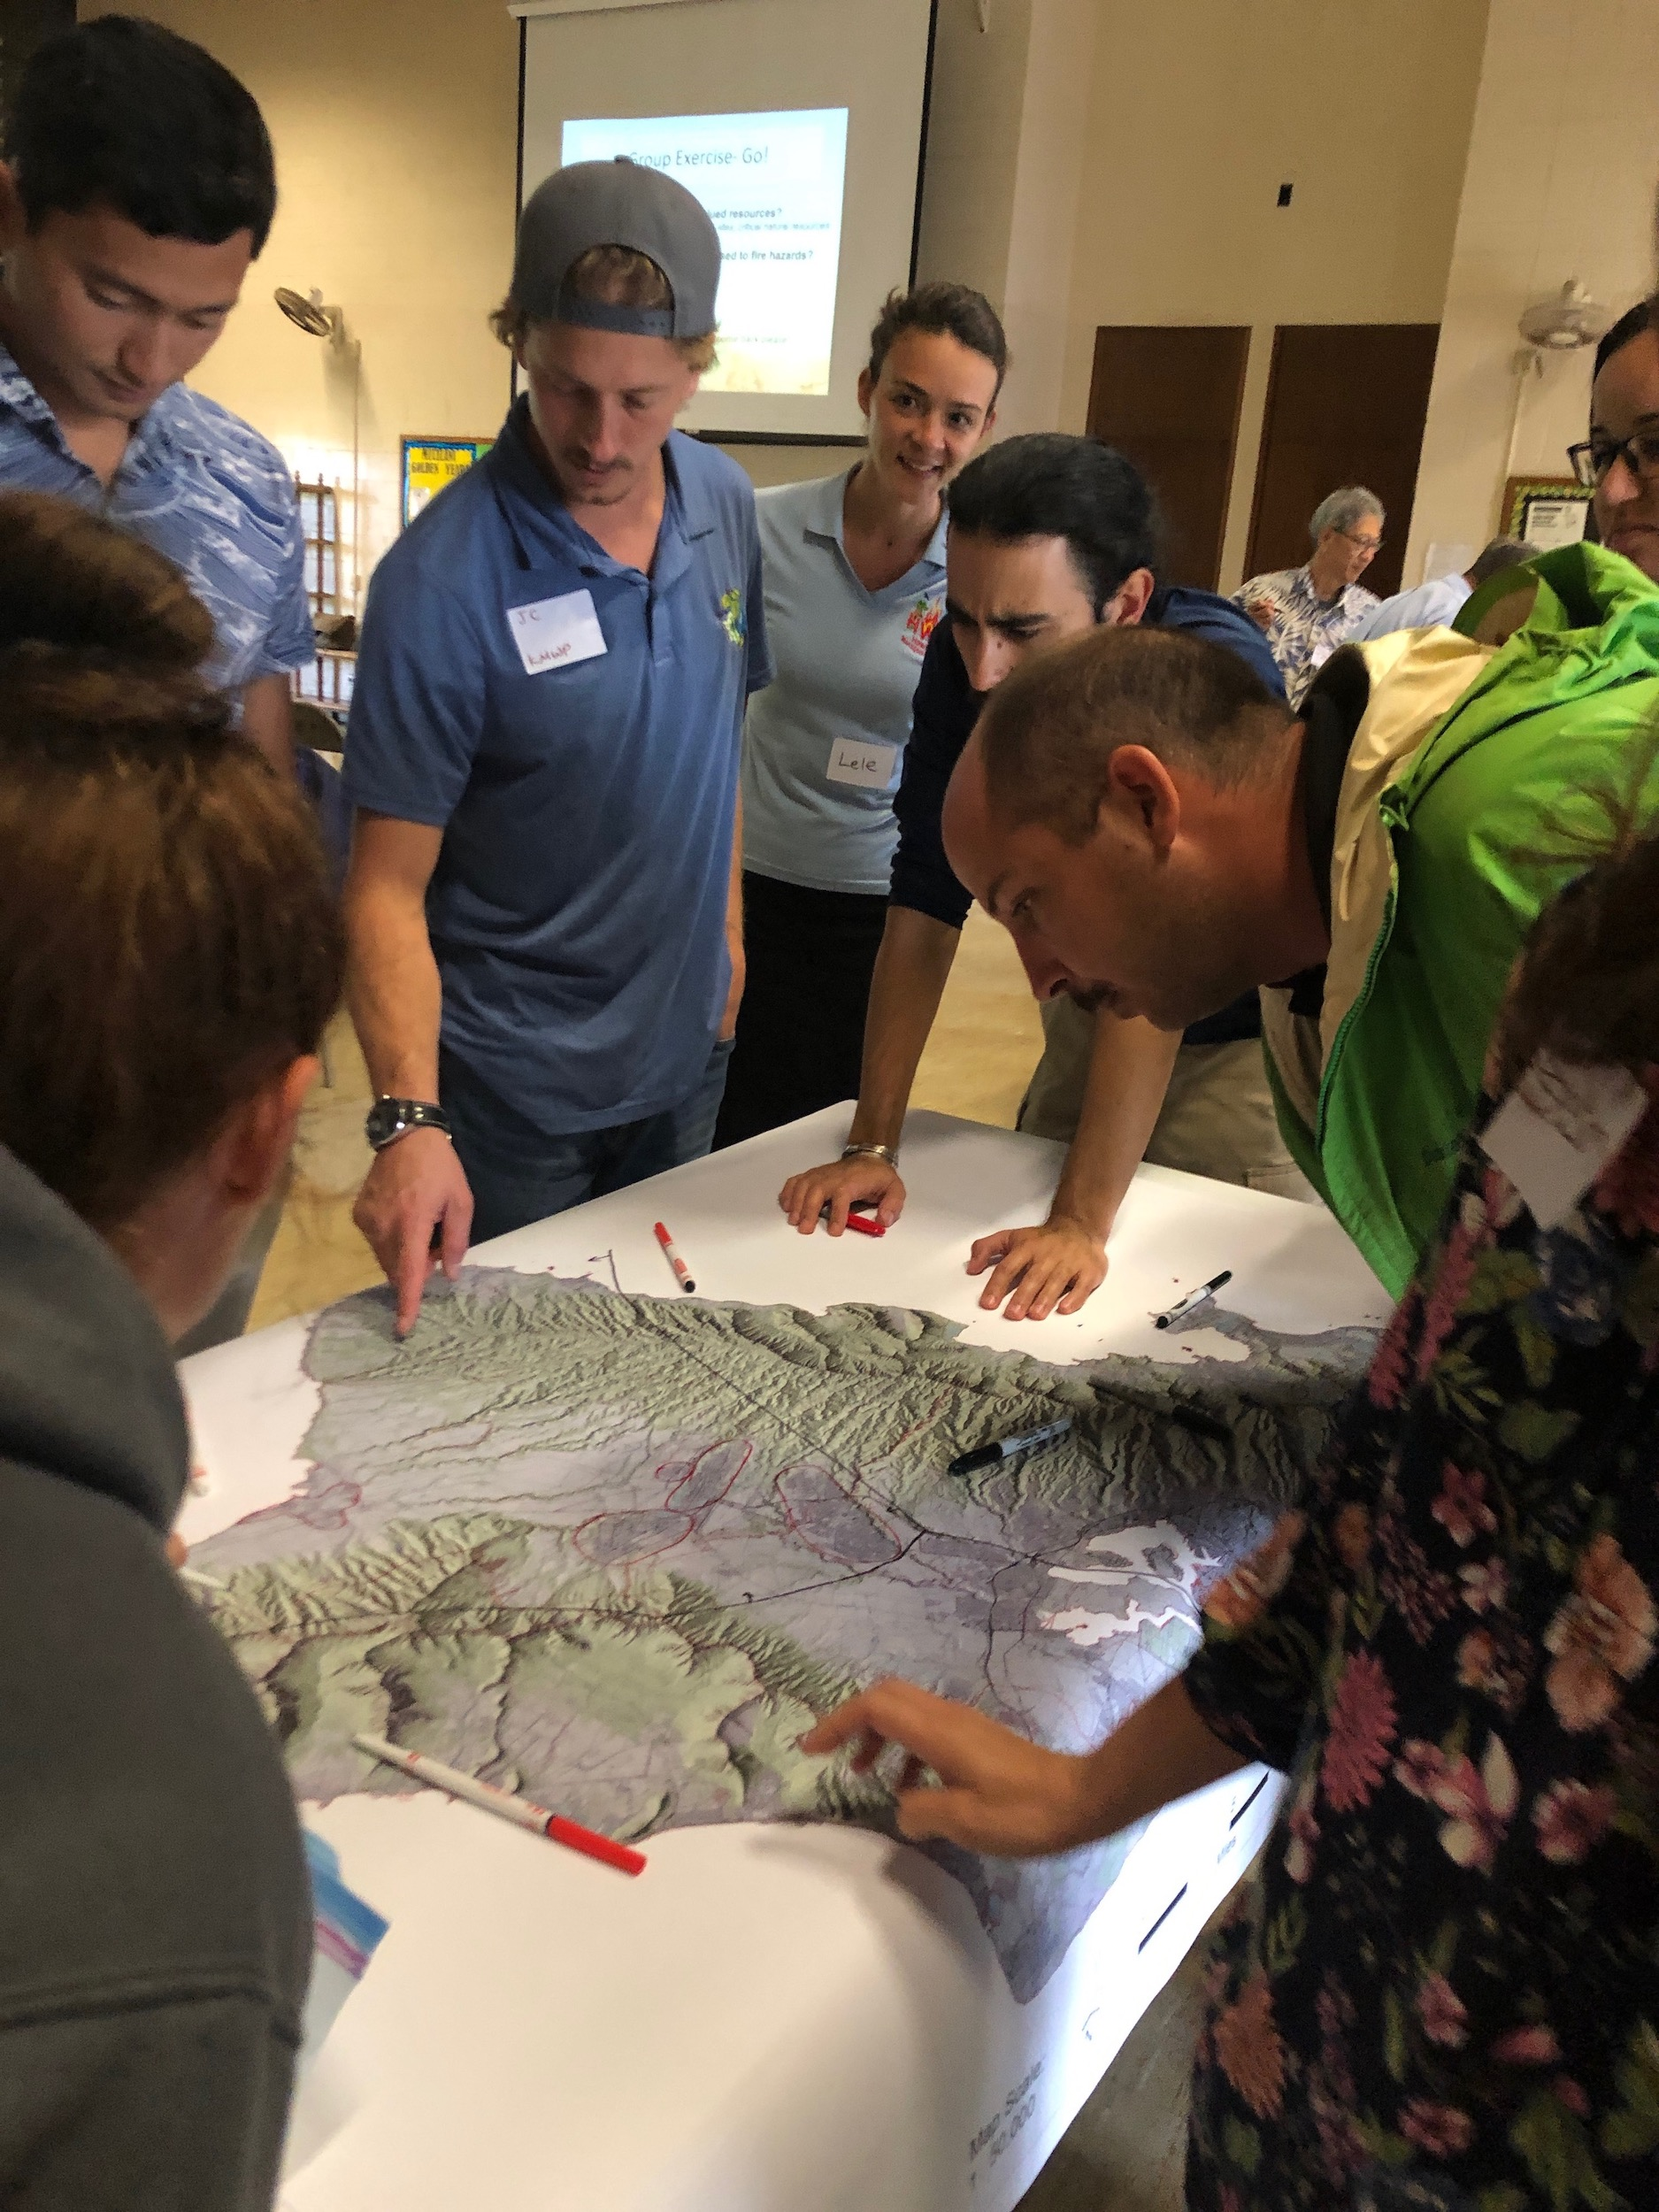 Oahu Vegetative Fuels Management Collaborative Action Planning Workshop_2_19_2019_12.jpg